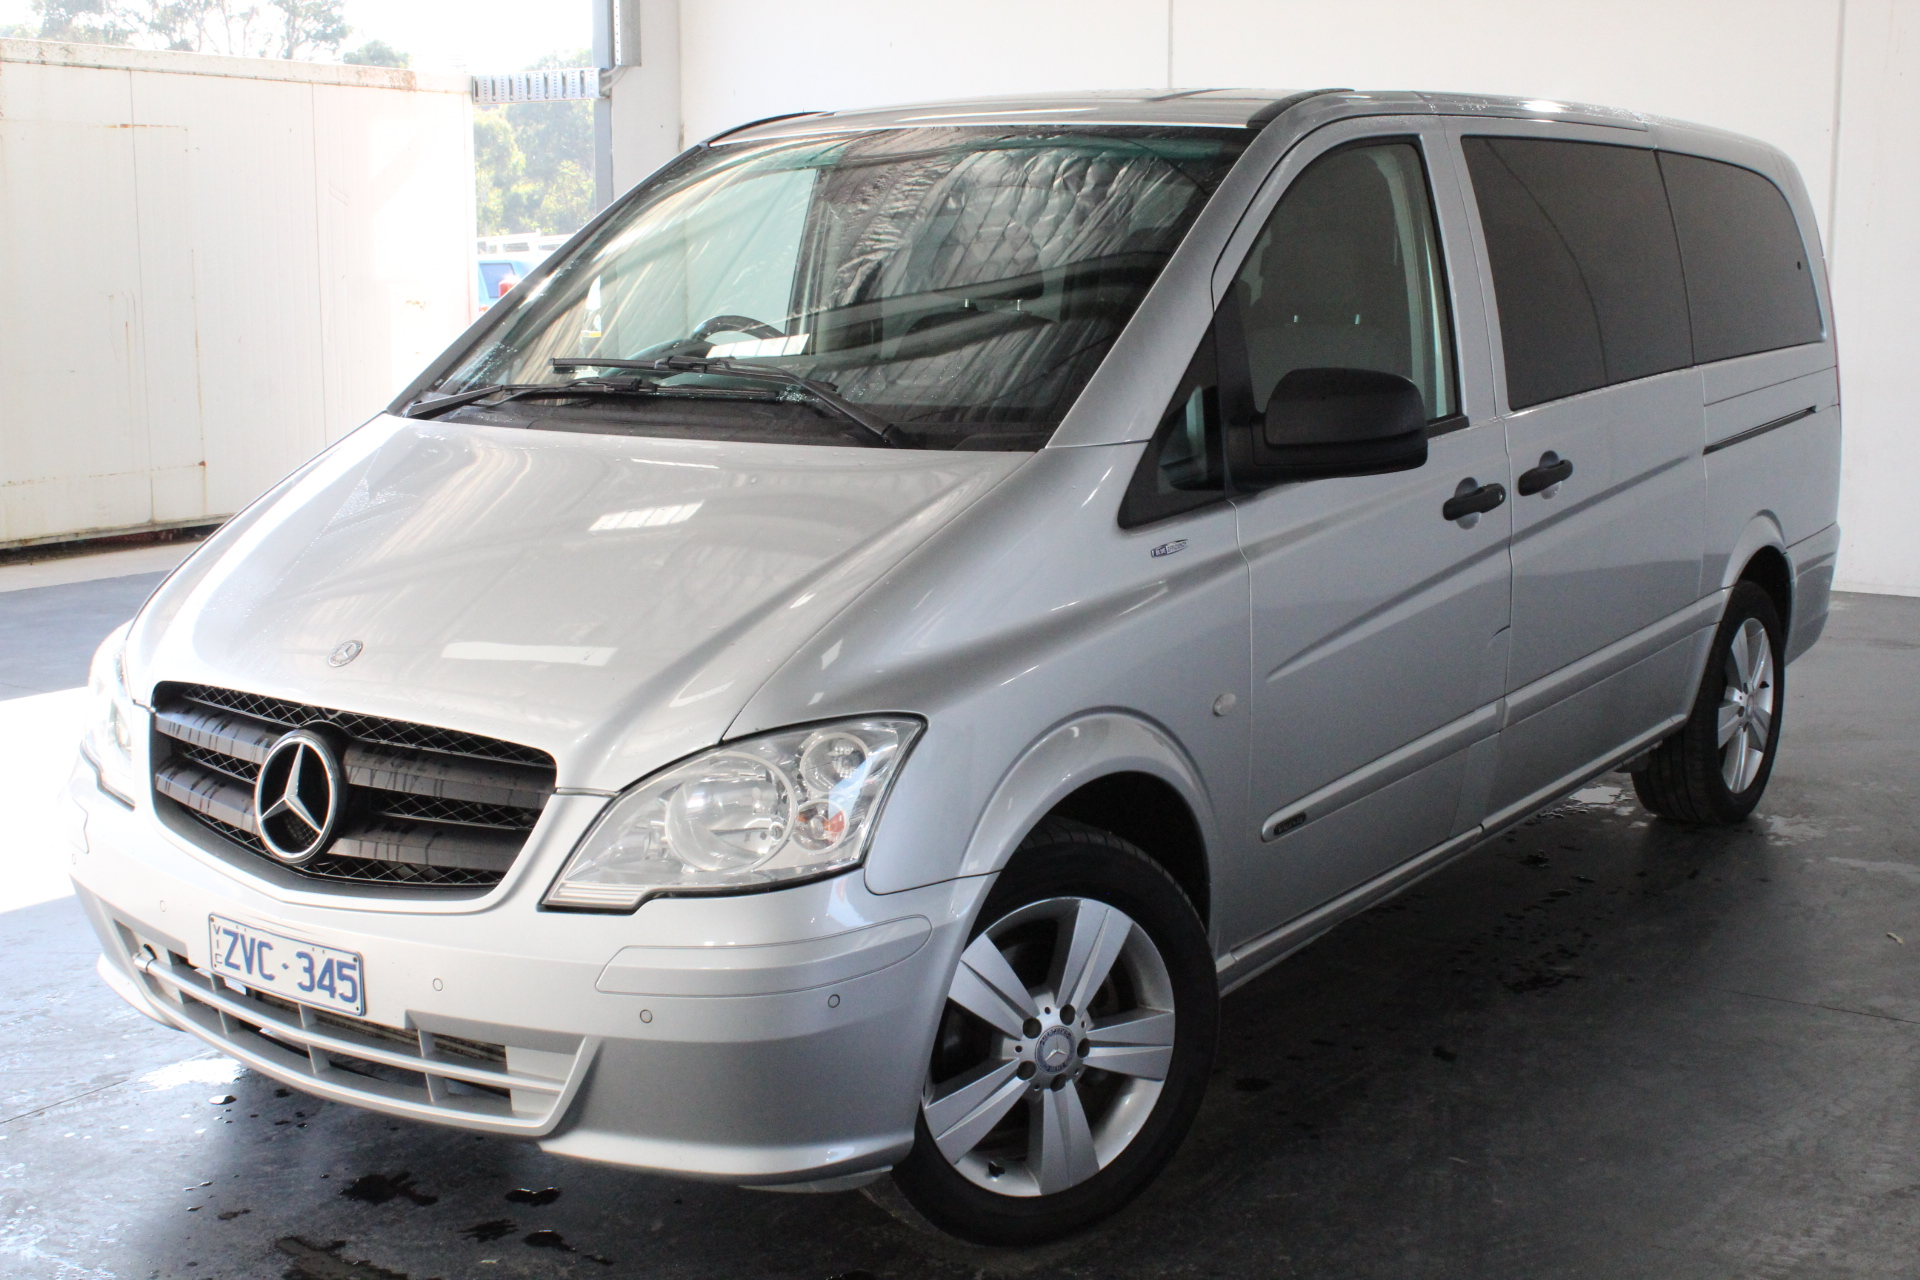 2013 Mercedes Benz VALENTE Turbo Diesel Automatic 8 Seats People Mover